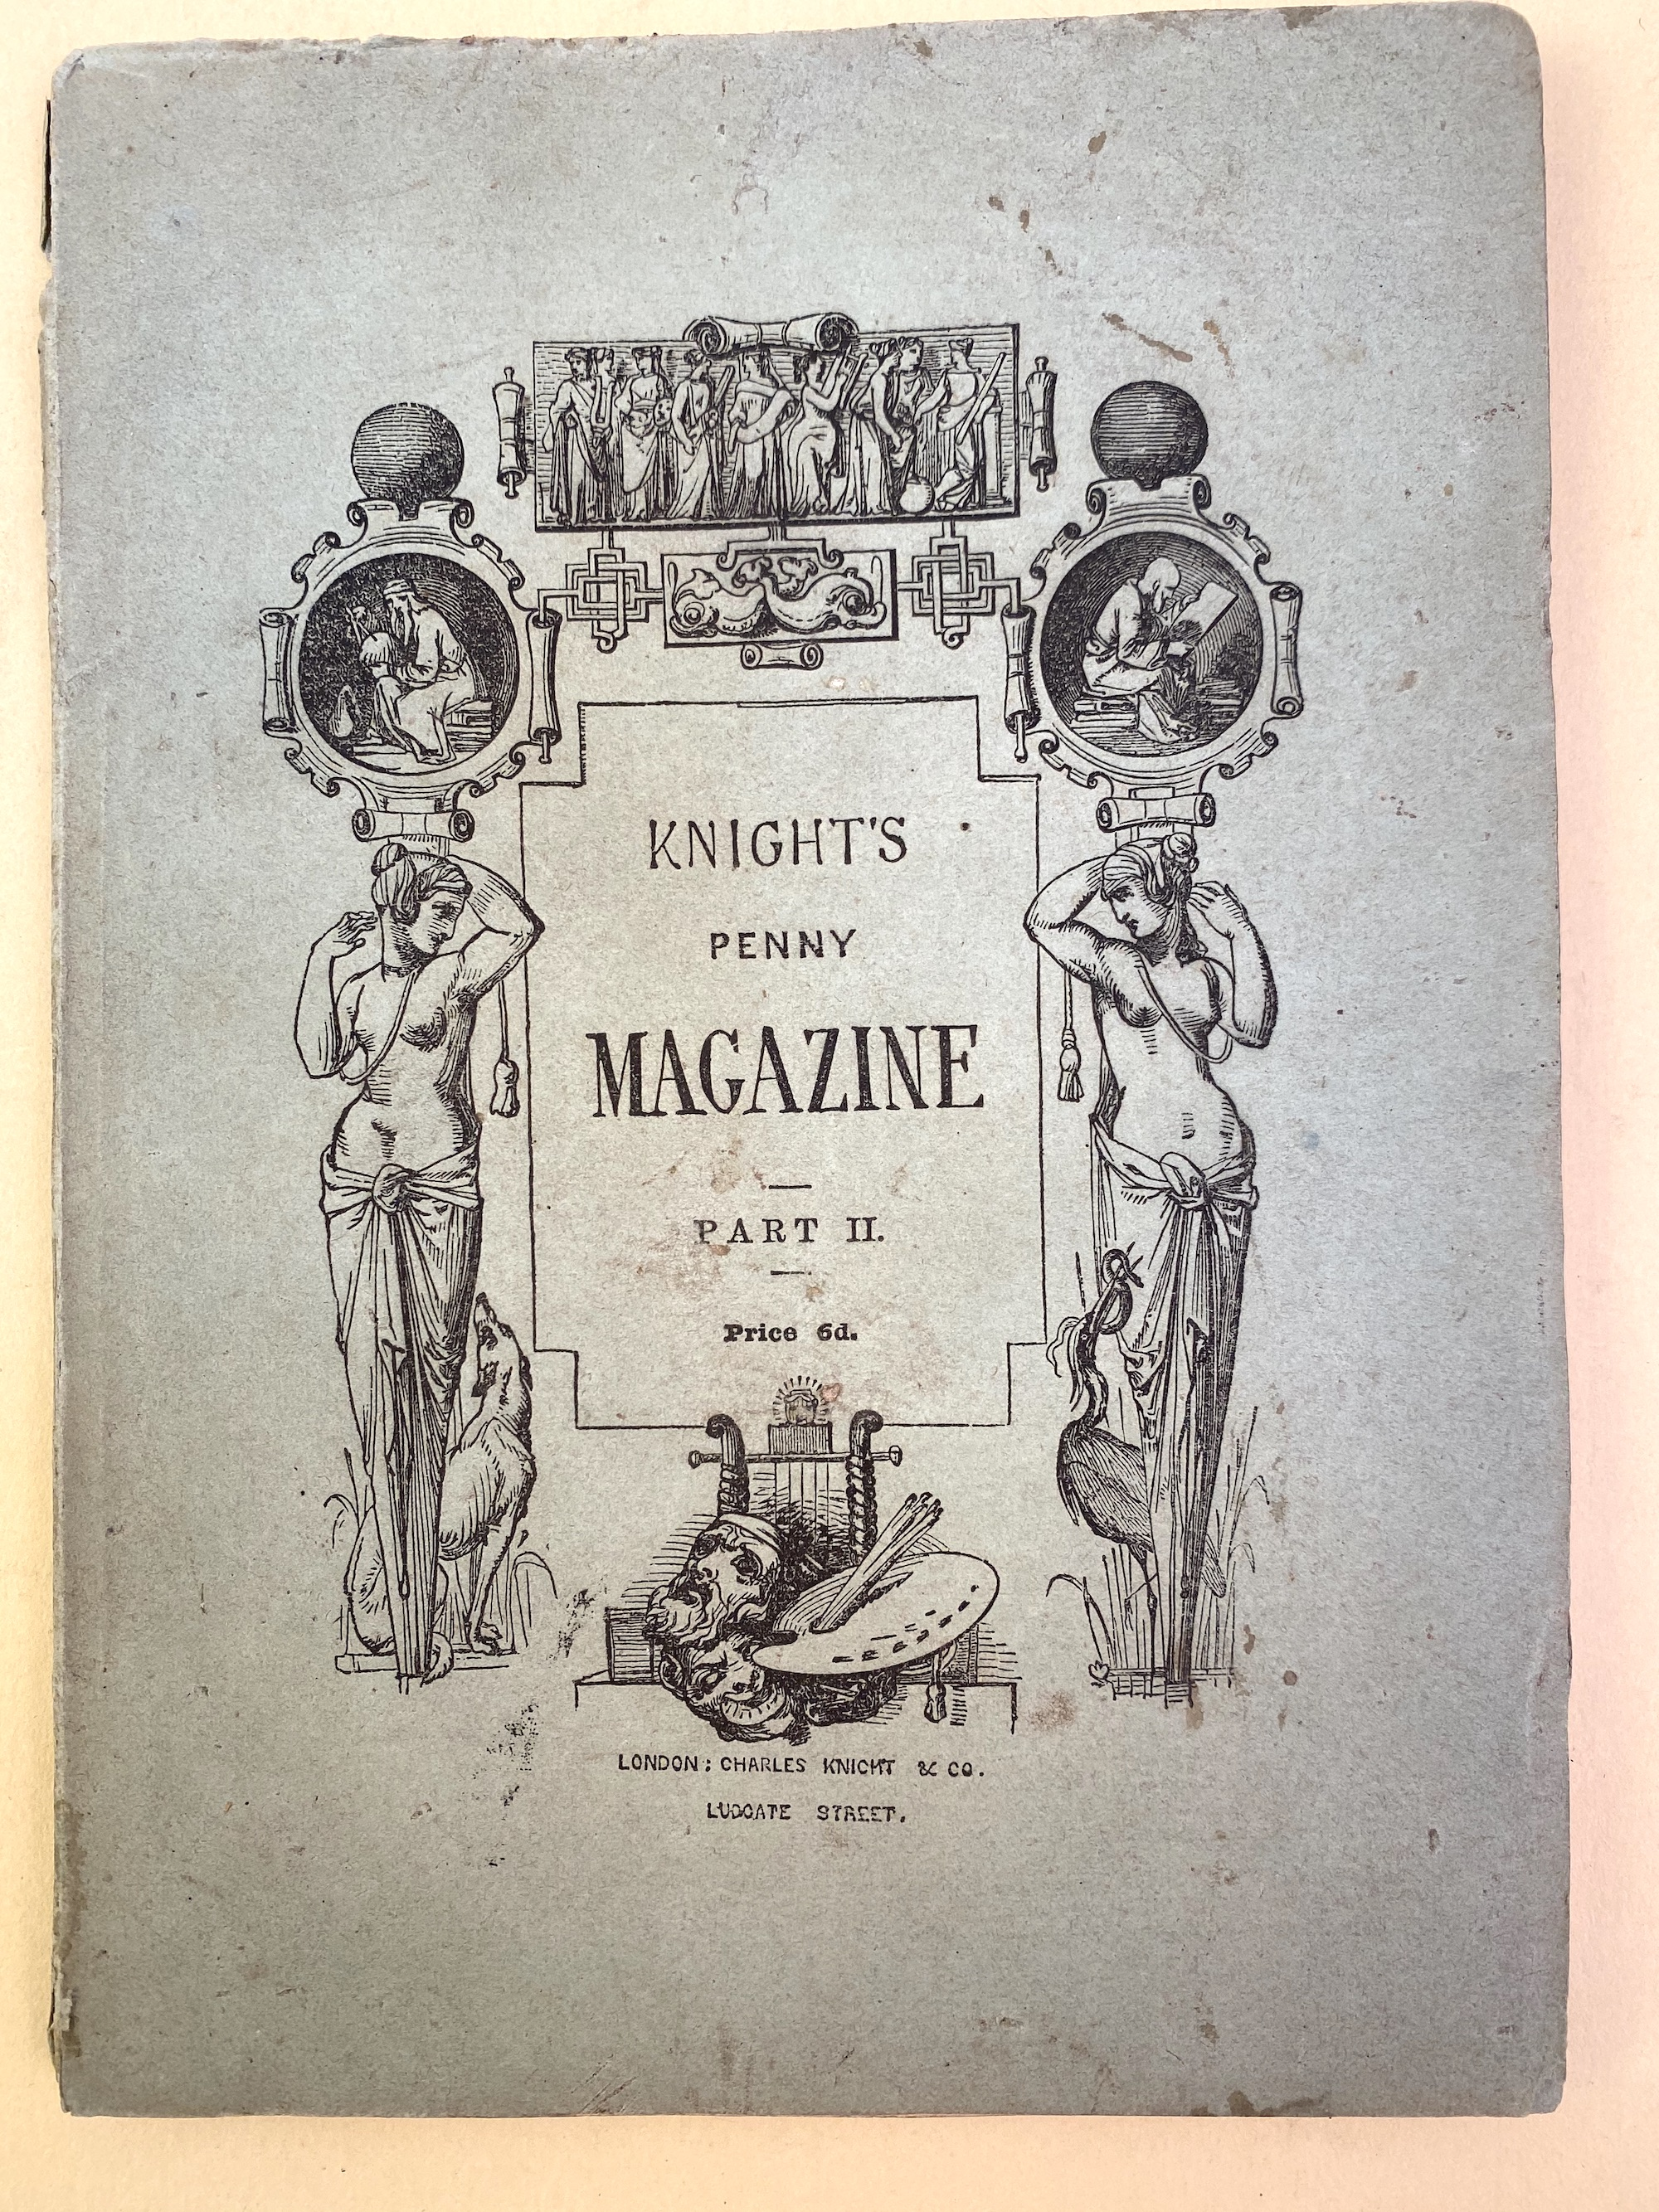 Upper printed wrapper of a separate issue of Knight's Penny Magazine